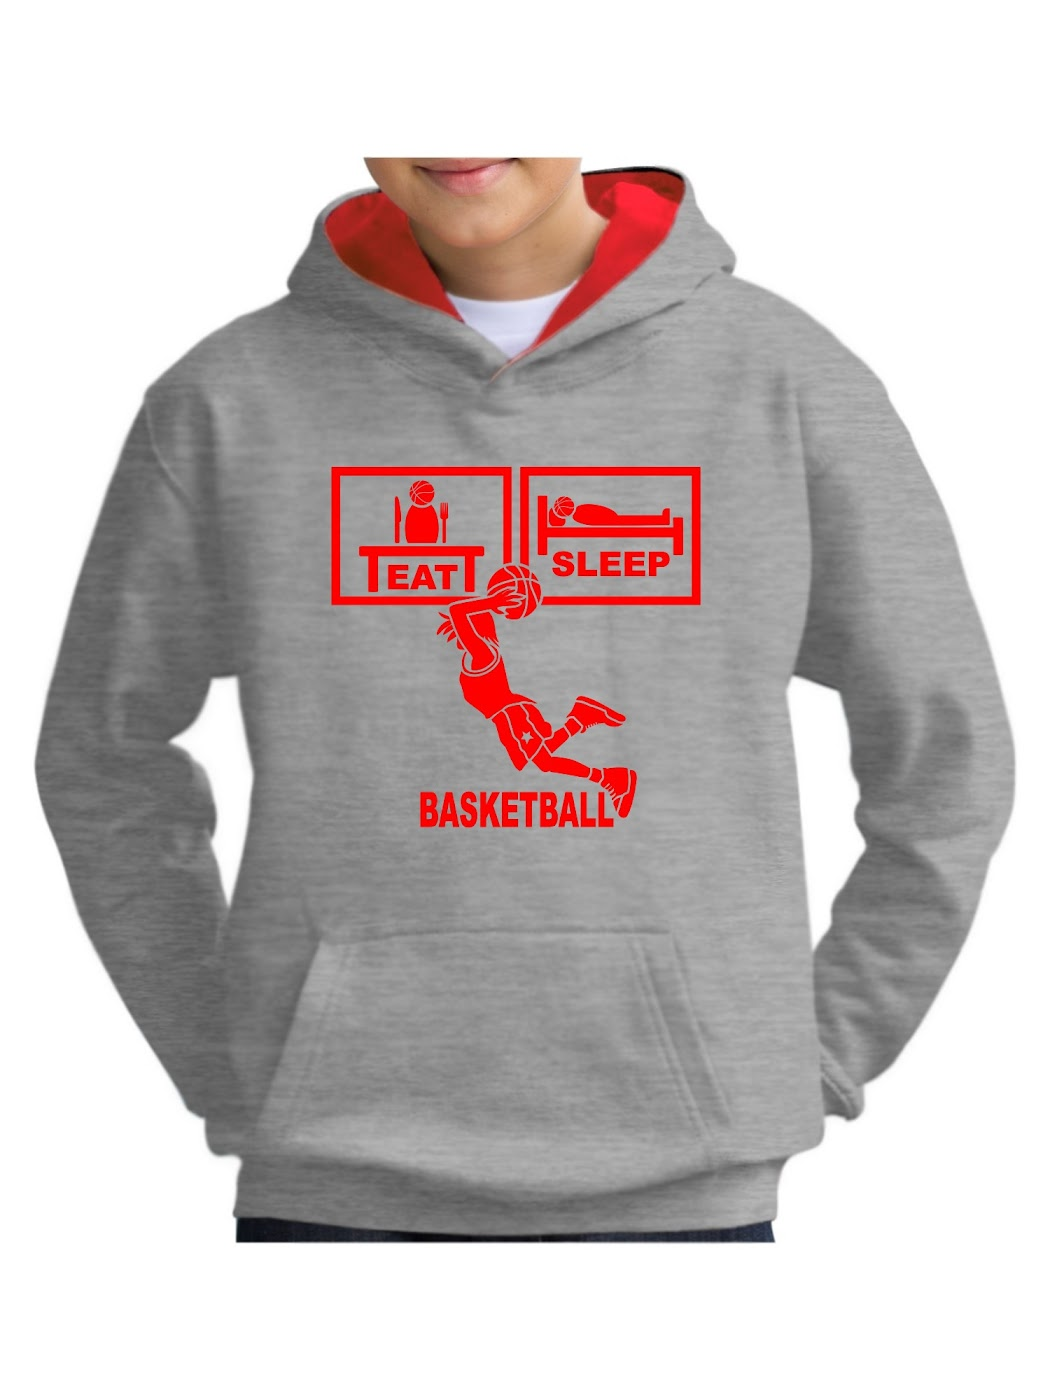 basketball Hoodies & Sweatshirts with your own message – as unique as you Hoodies & Sweatshirts on the topic of